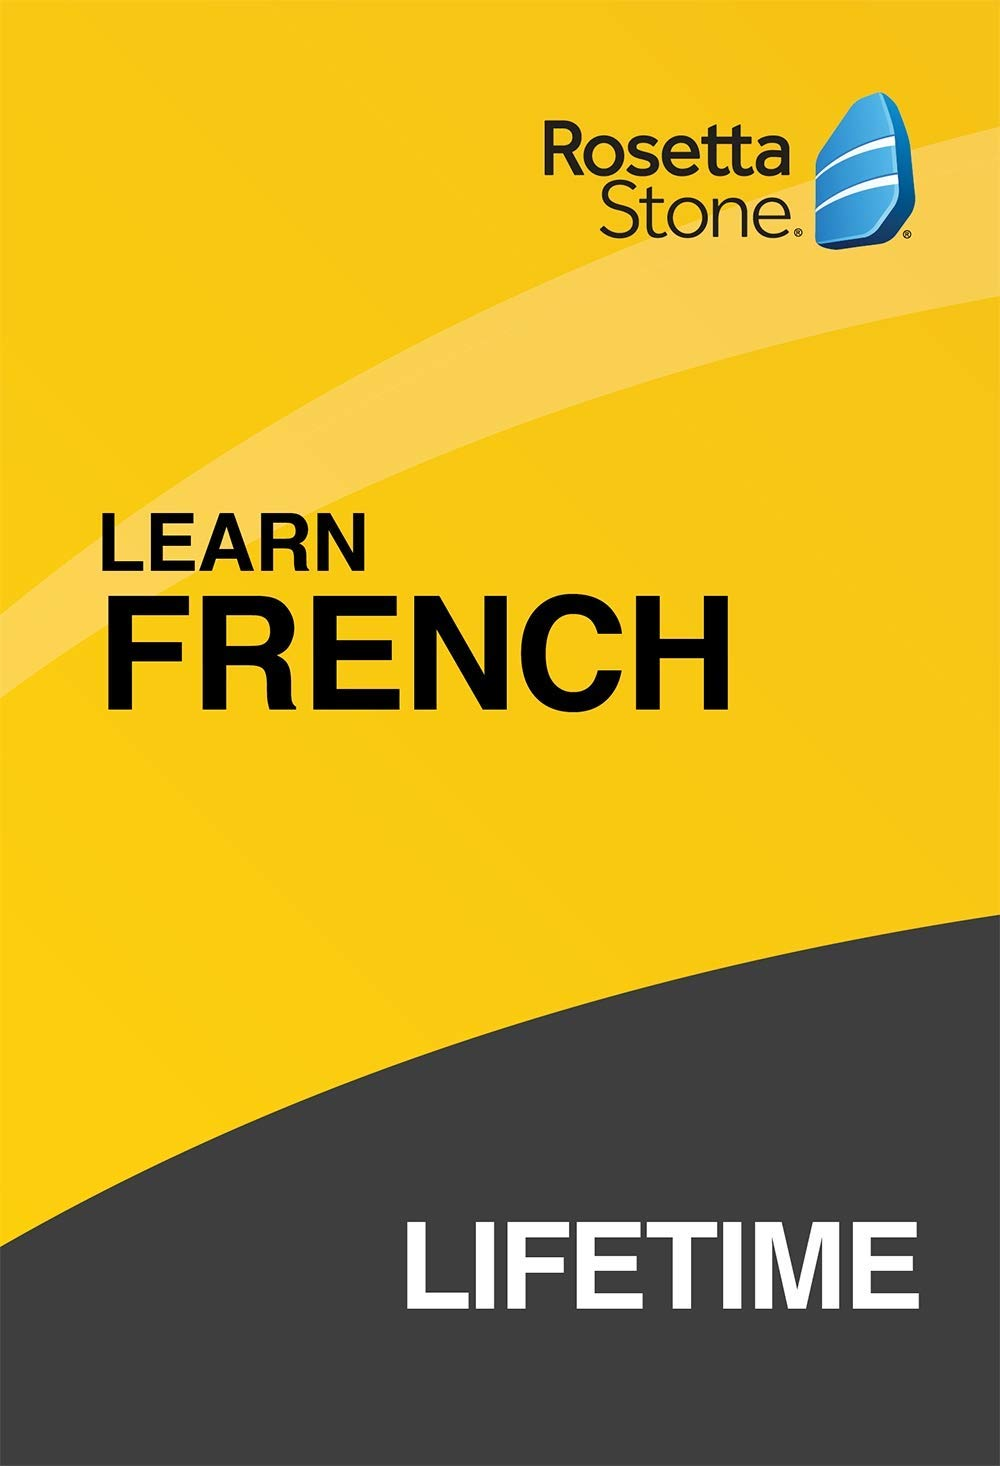 Rosetta Stone: Learn French with Lifetime Access on iOS, Android, PC, and Mac [Activation Code by Mail] by Rosetta Stone